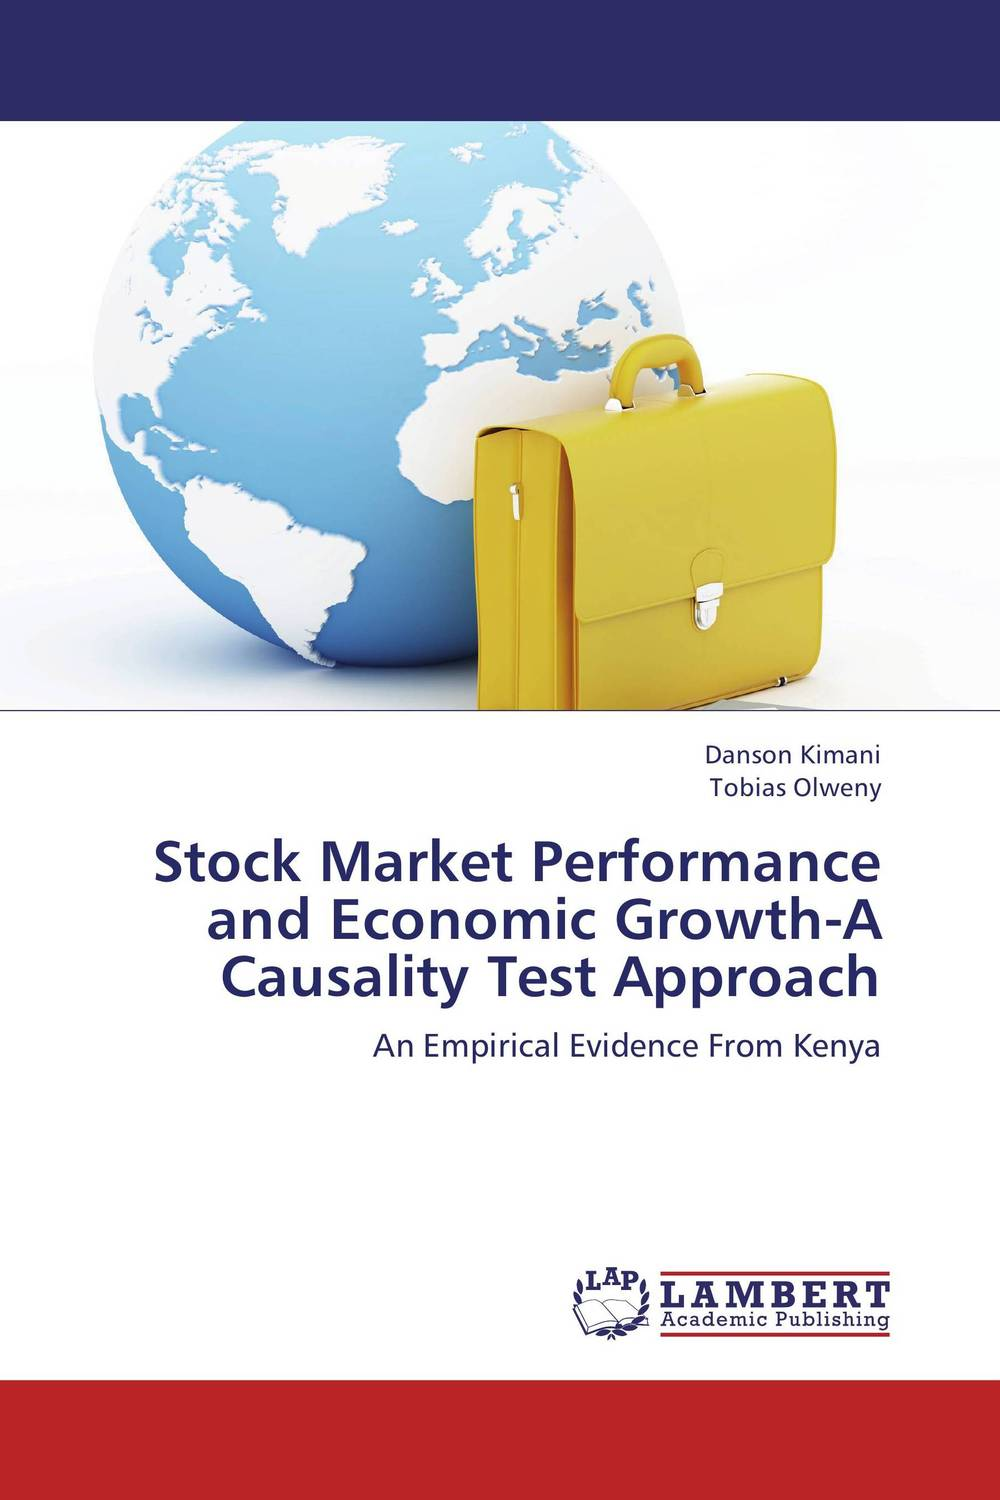 Stock Market Performance and Economic Growth-A Causality Test Approach impact of stock market performance indices on economic growth